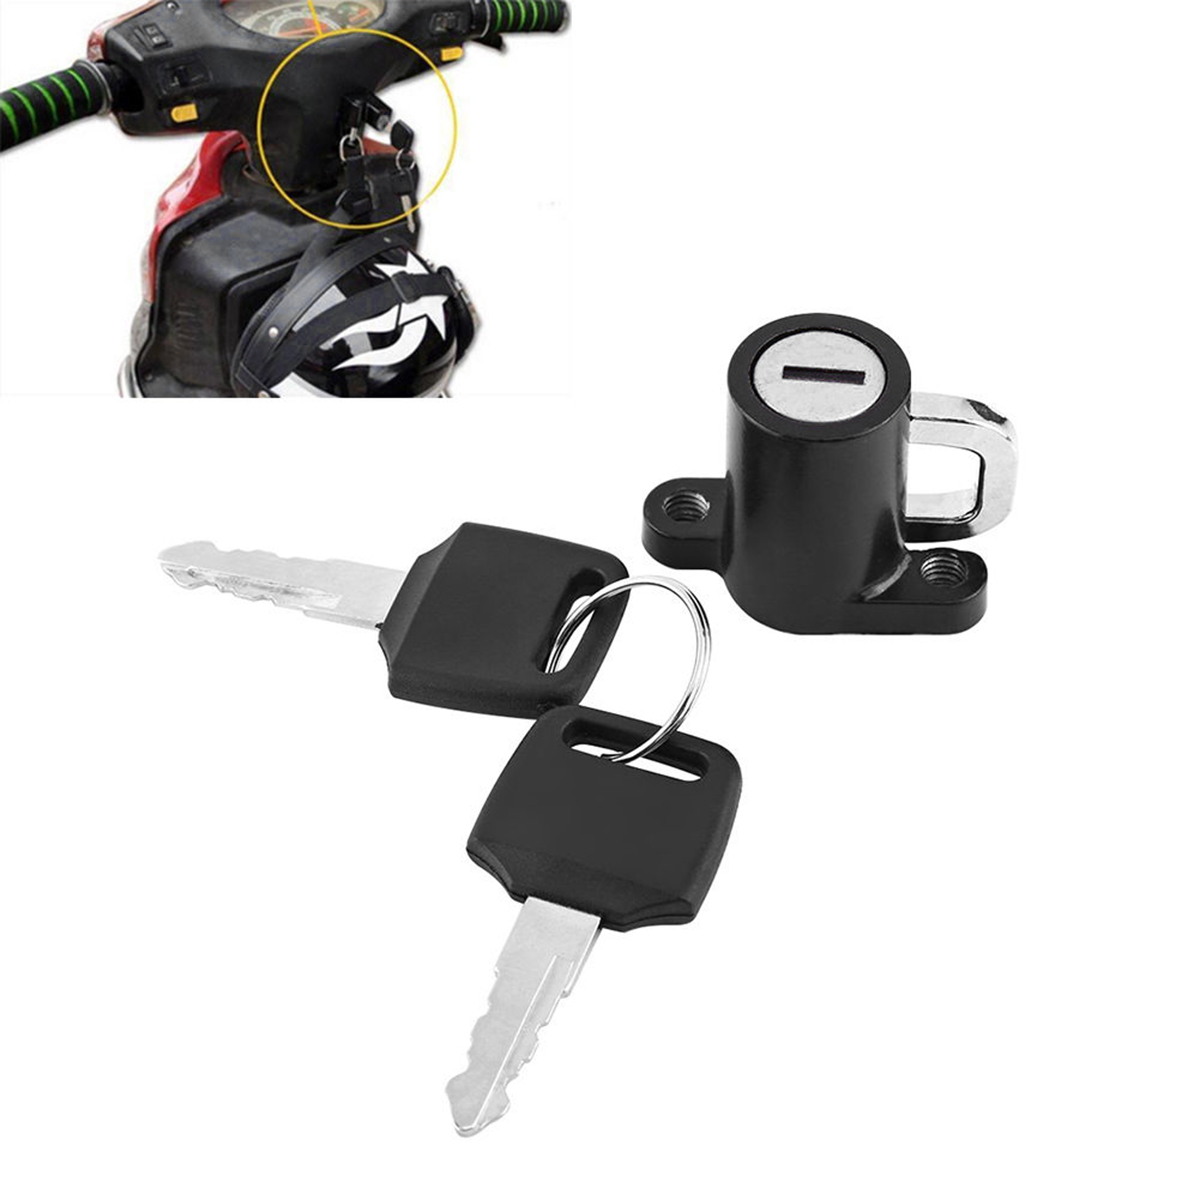 1 Set Helmet Lock Hanger Hook Universal Motorcycle Motorbike Bike Car-Styling And 2 Keys Set Durable